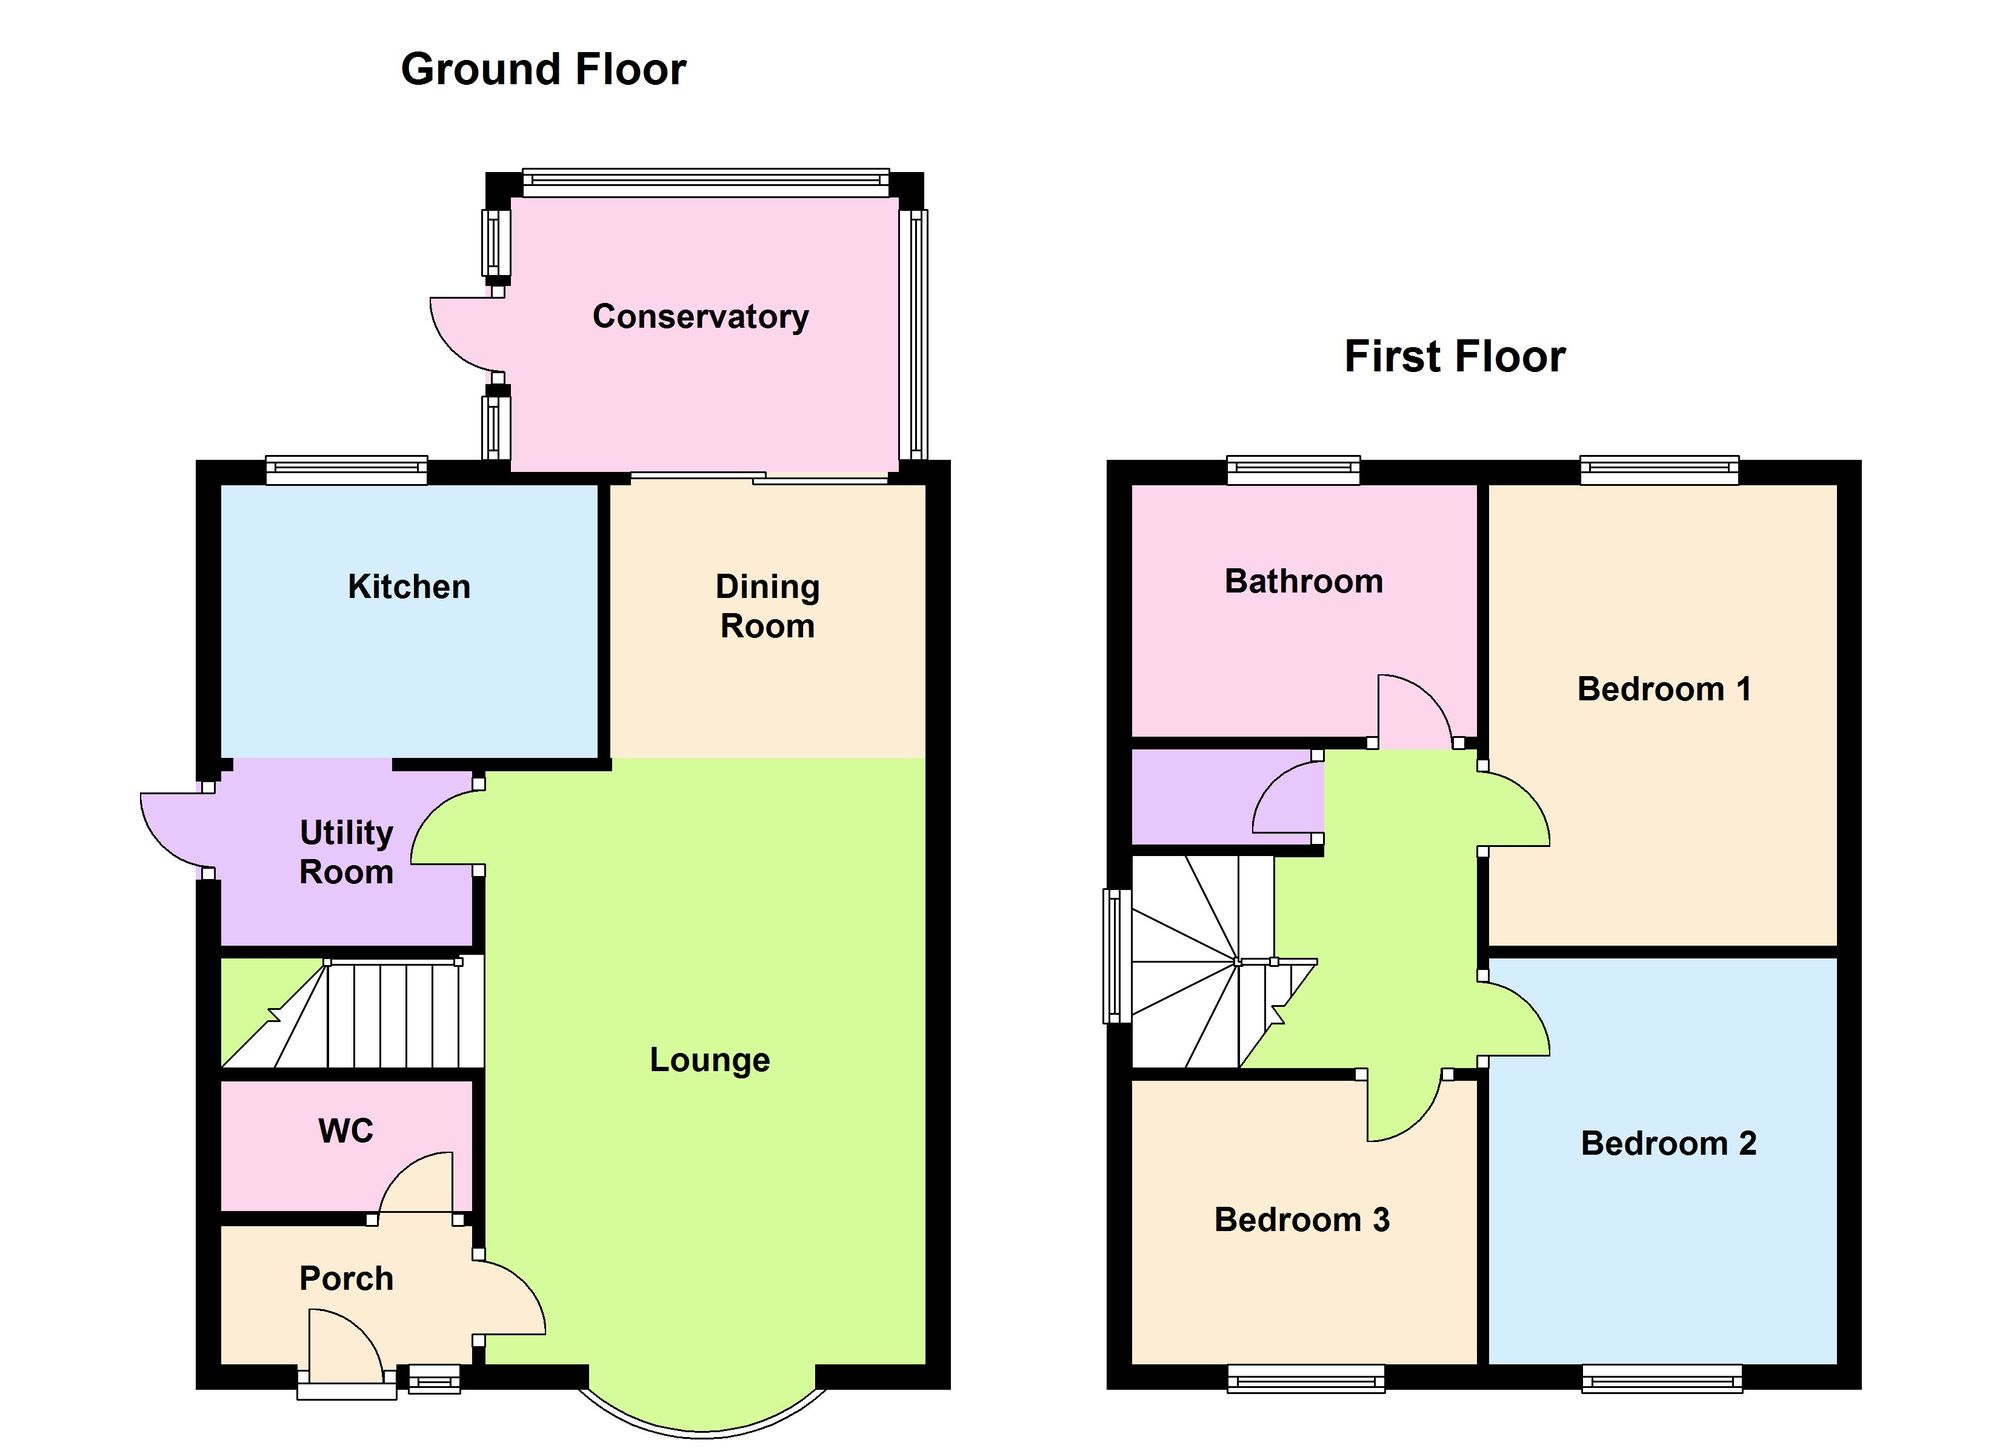 Average 3 Bedroom House Price Latest News On Design Architecture Cost Of Rewiring A Bed For Movers 28 Images